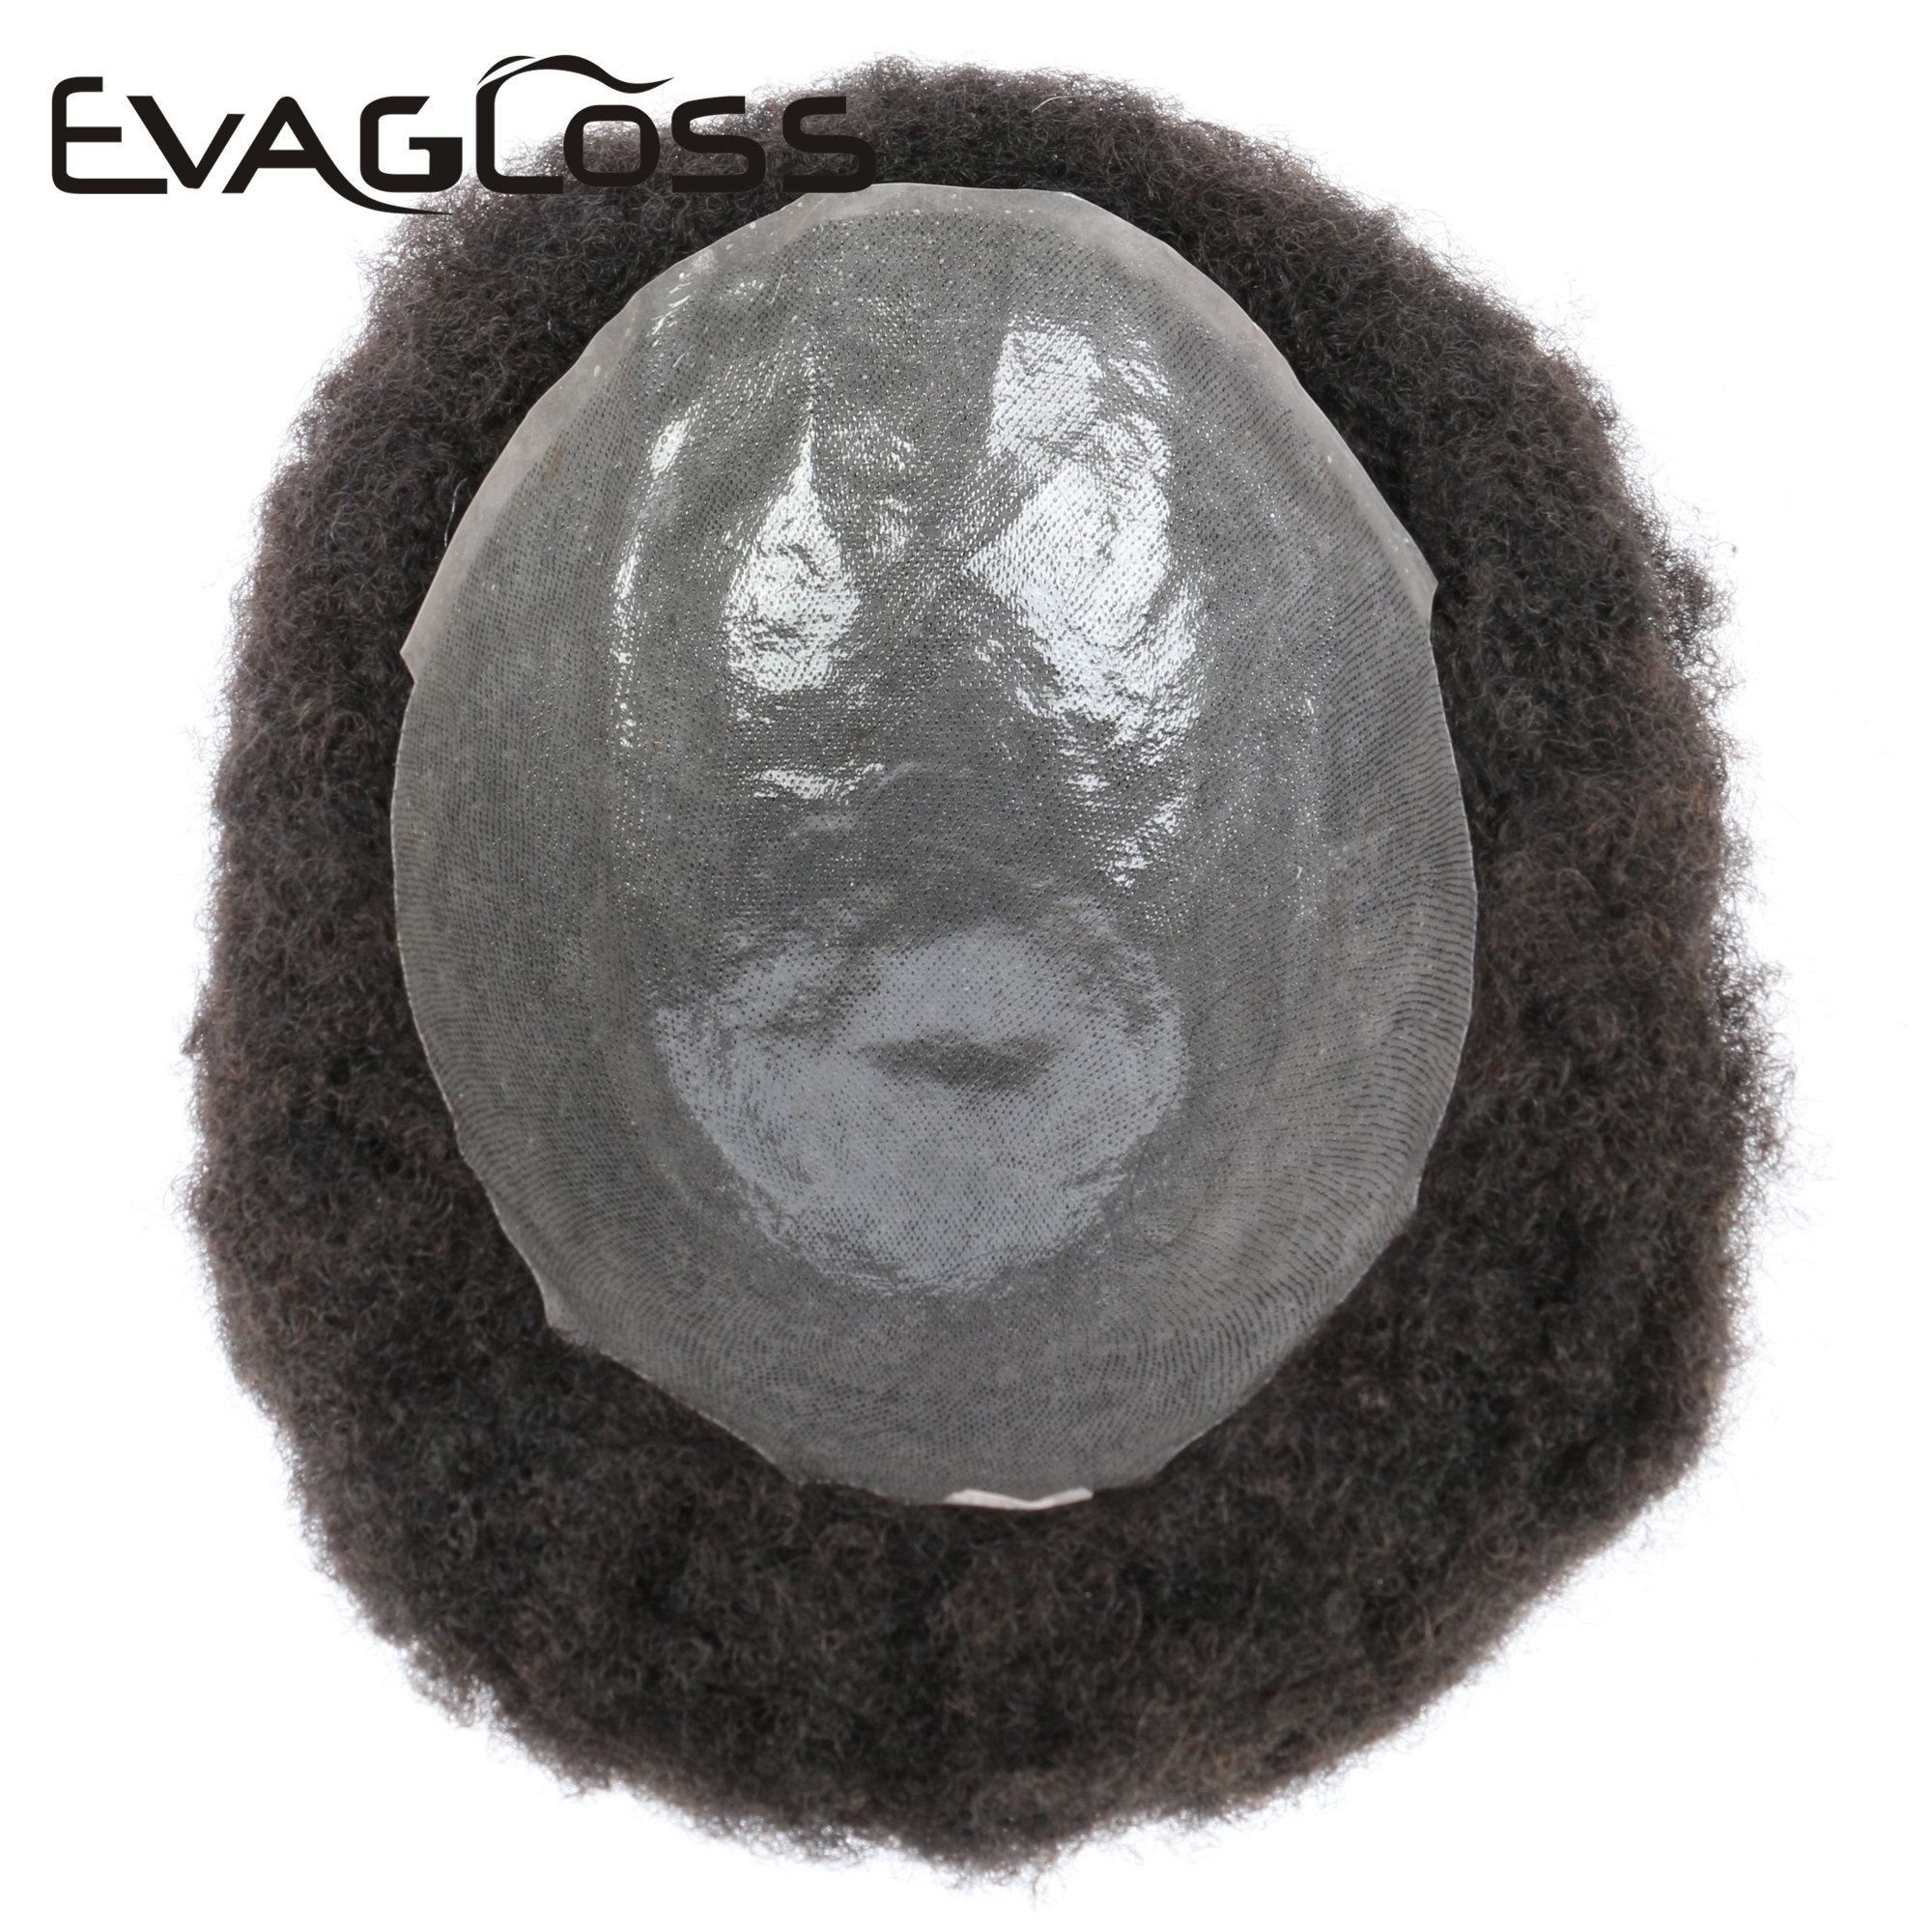 EVAGLOSS Afro Full Thin Skin Natural Human Hair Men Hair Wig Toupee For Black People 8*10